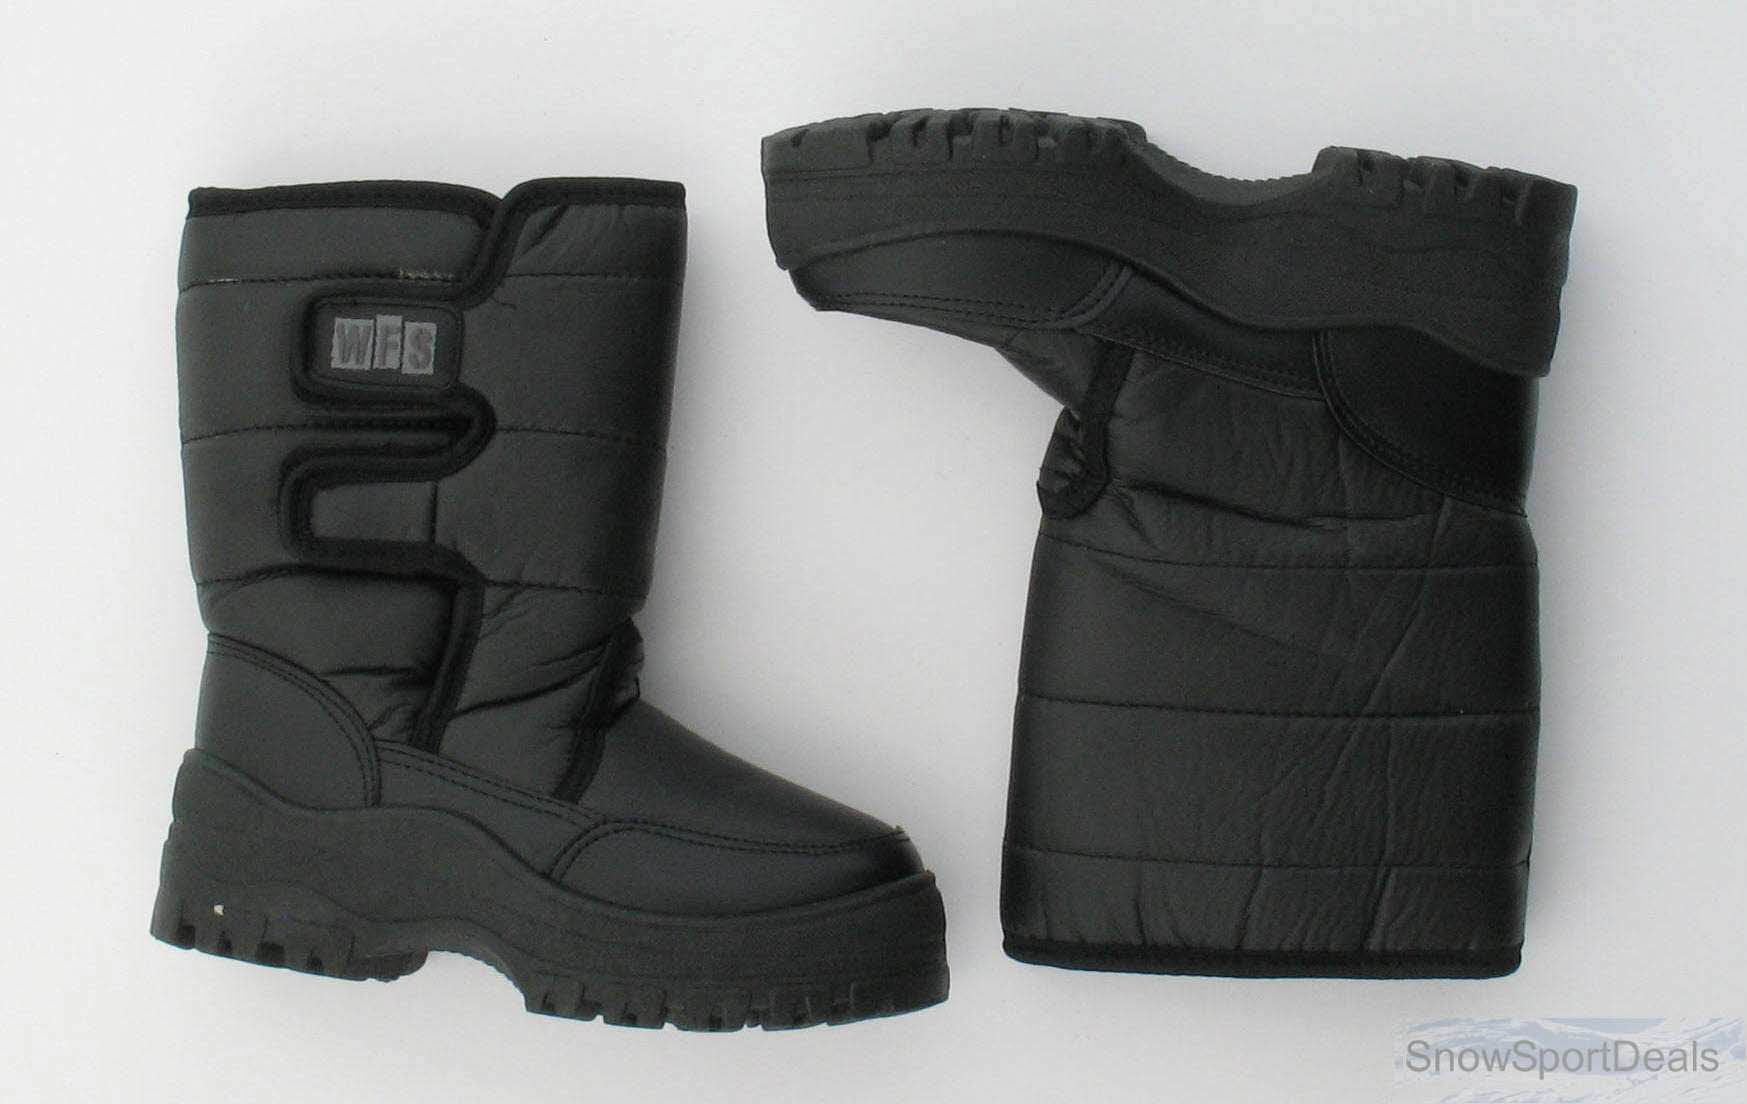 After Snow Boots